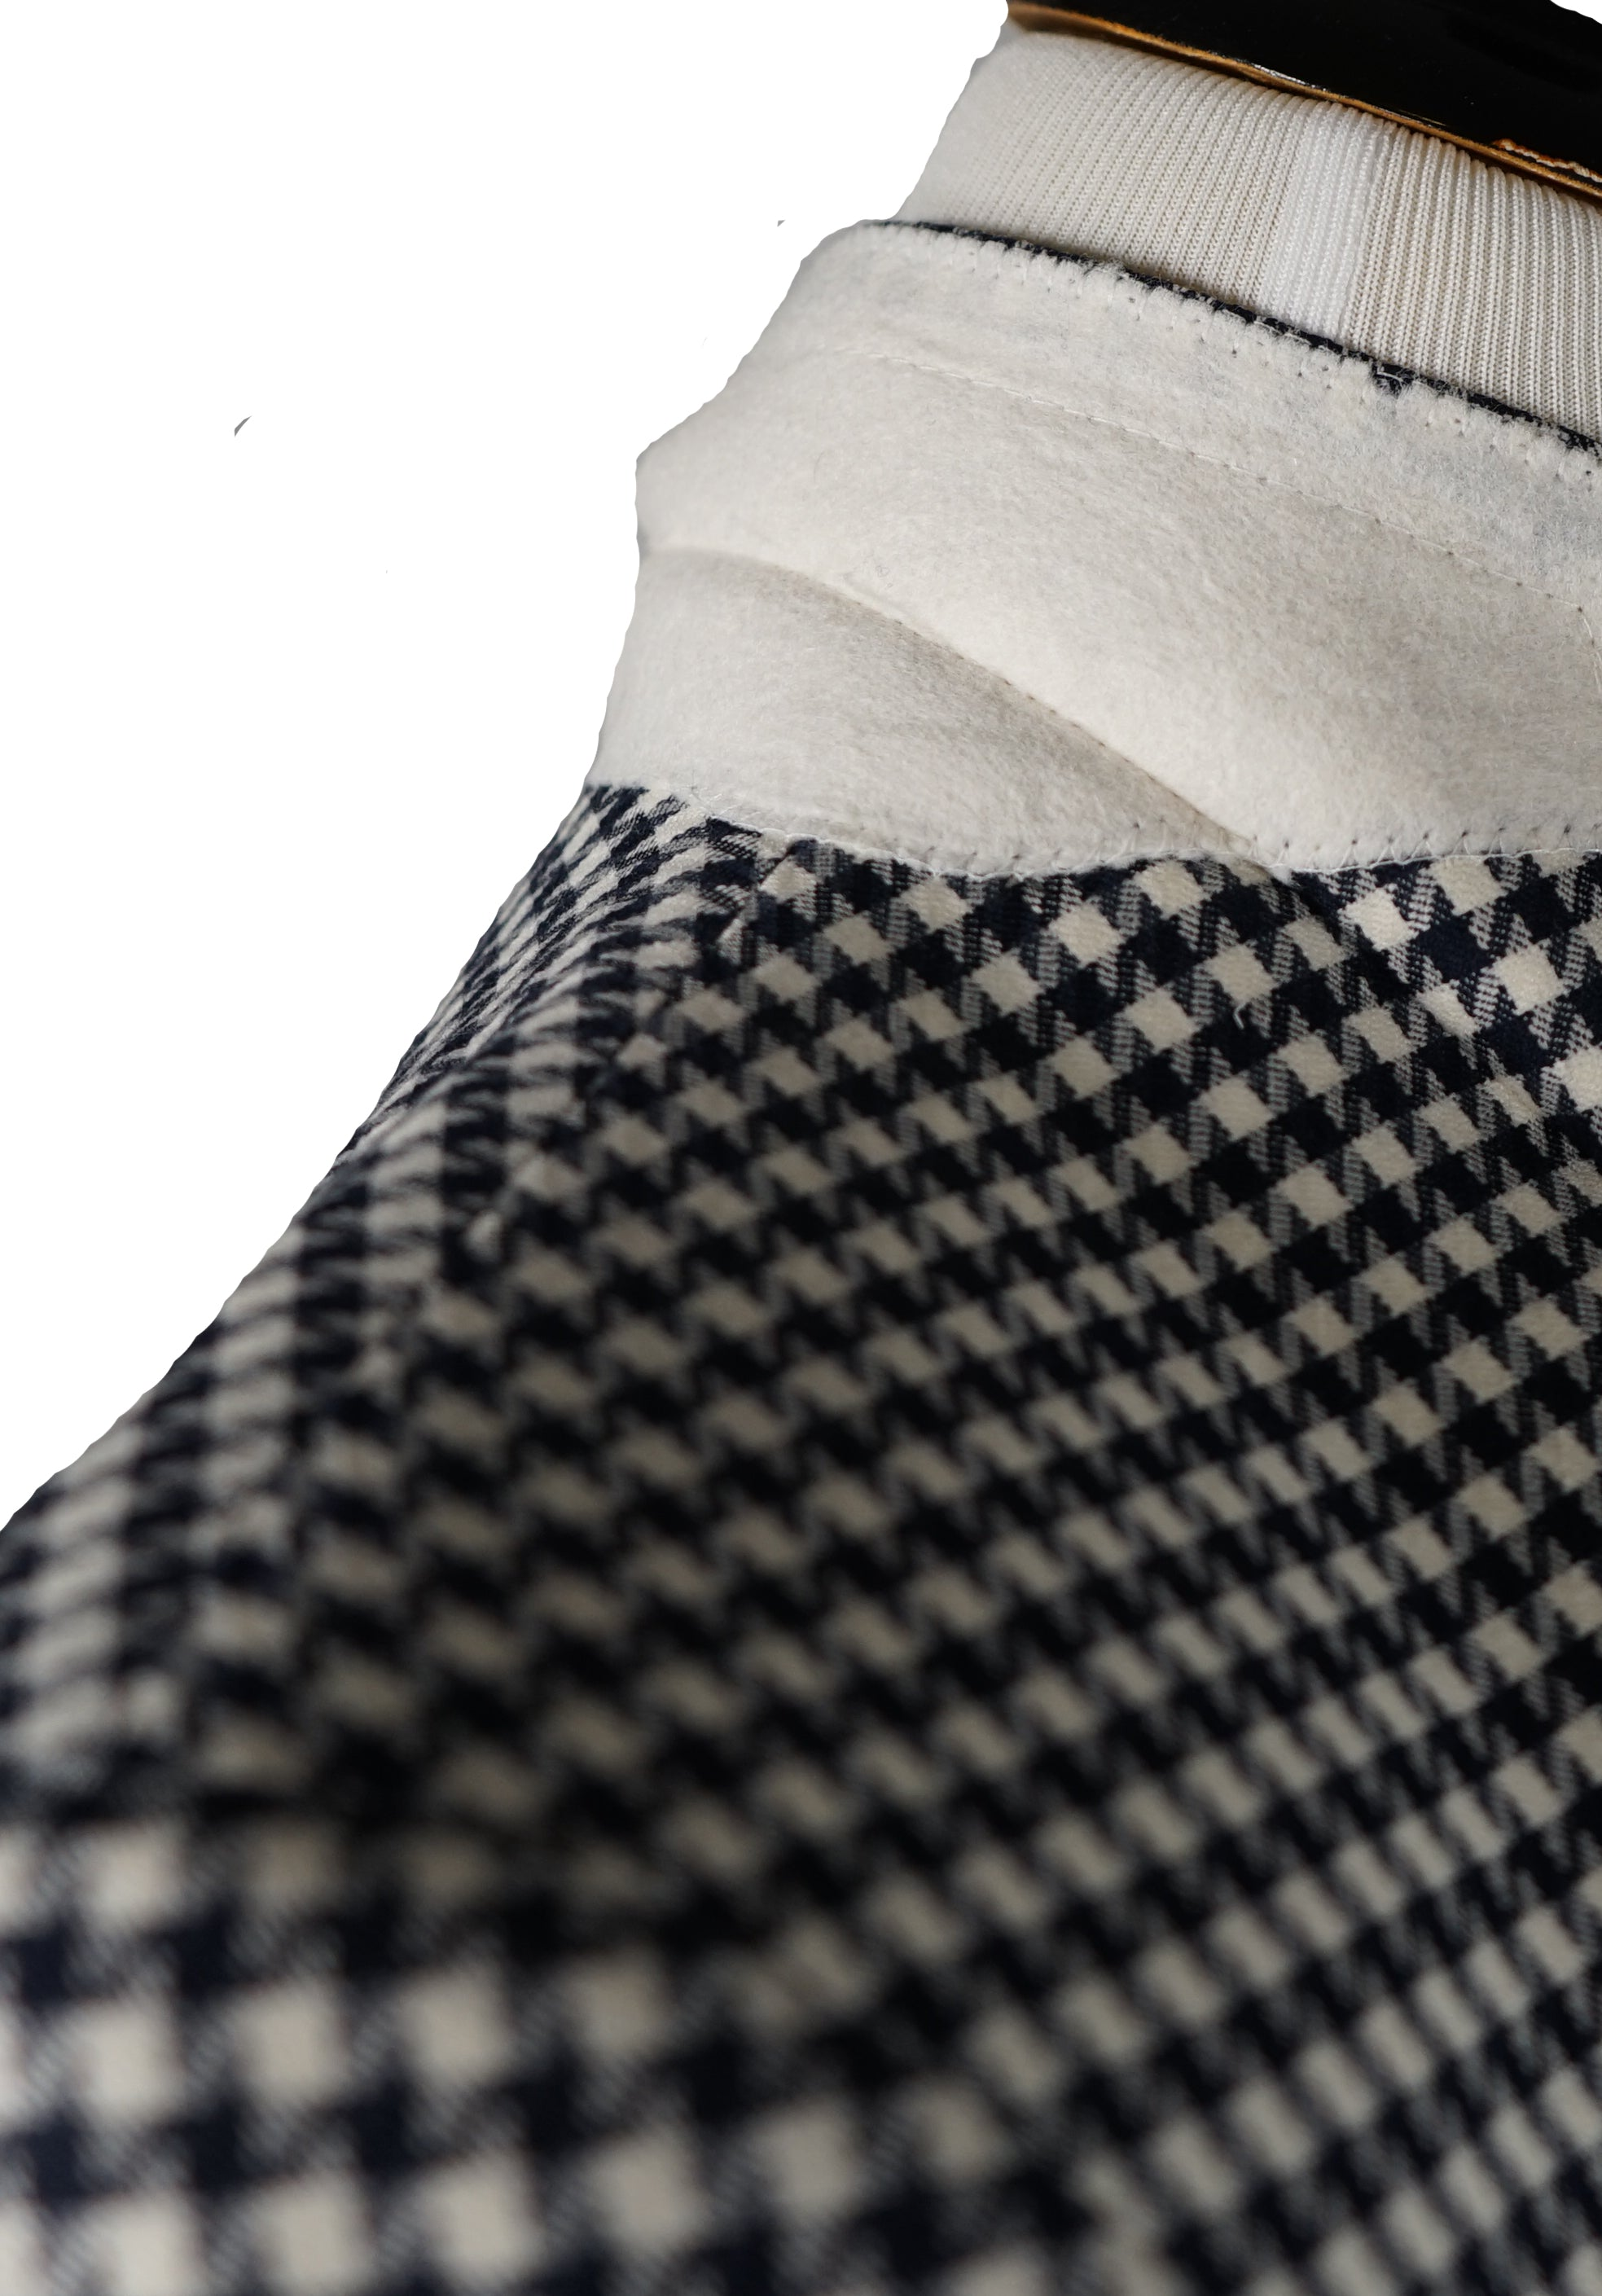 SAKS 5TH AVE BY HICKEY FREEMAN - Navy & Ivory Houndstooth Wool Blazer - 44R